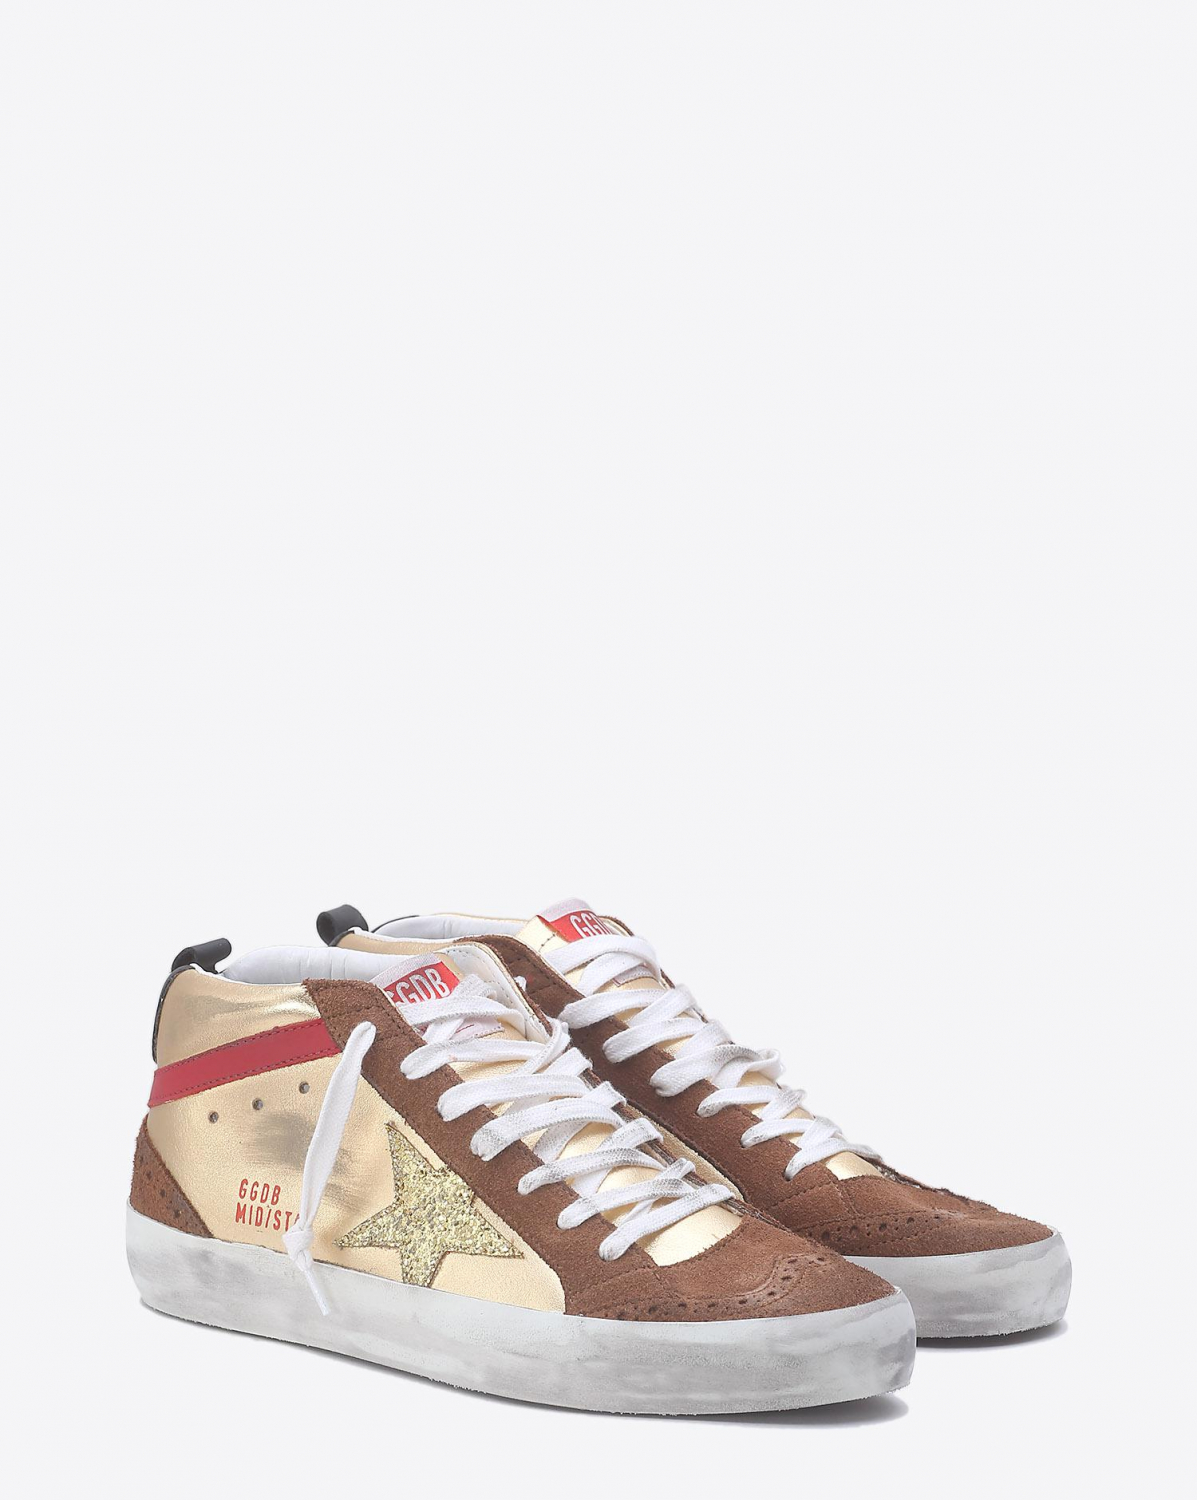 Golden Goose Woman Collection Sneakers Mid Star - Gold Laminated  Gold Glitter Star